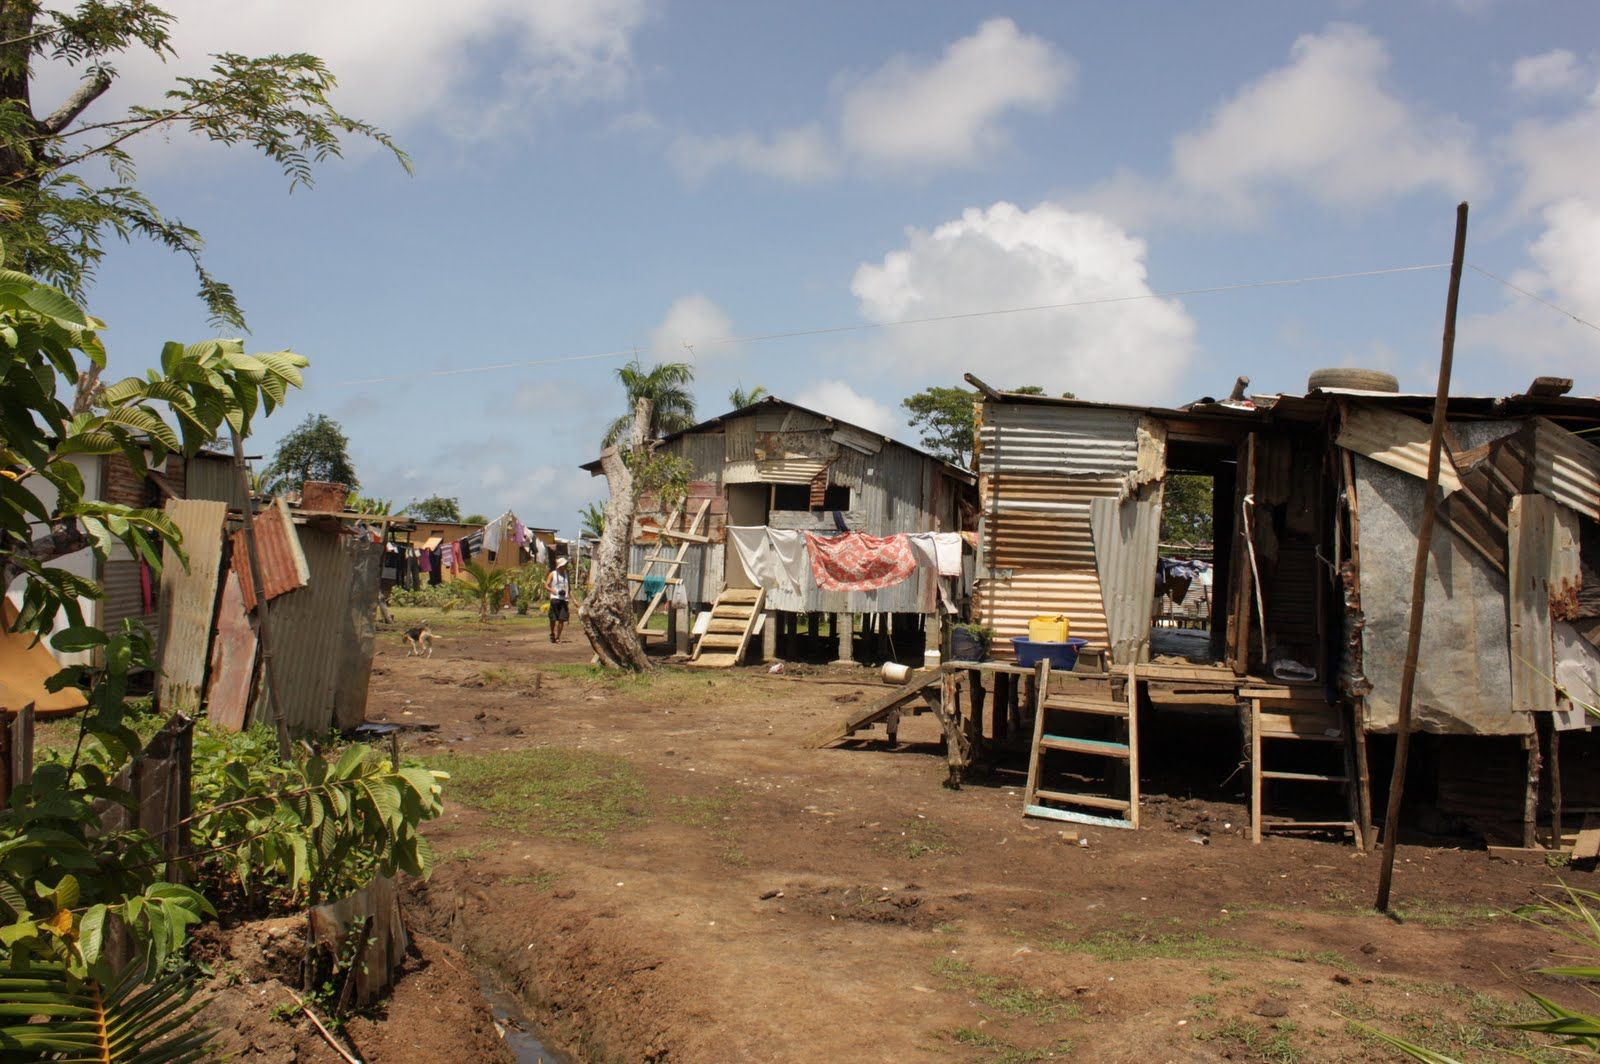 More Than 250 000 People In The Fiji Islands Live In Poverty And Many More Live On Or Just Above The Poverty Line With A Population D Fiji Islands Fiji Island